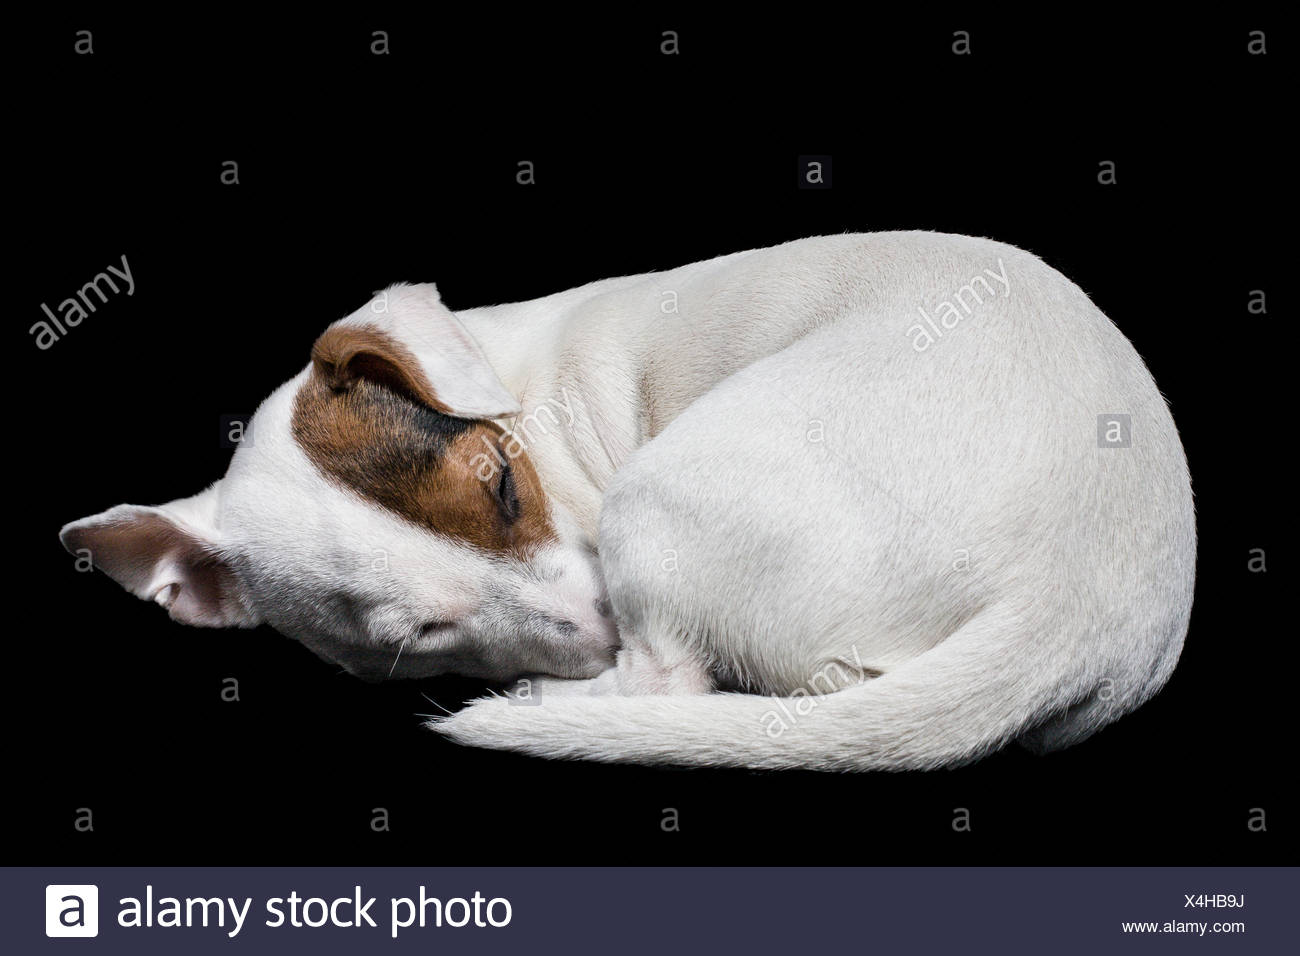 Portrait of a jack russell dog sleeping - Stock Image